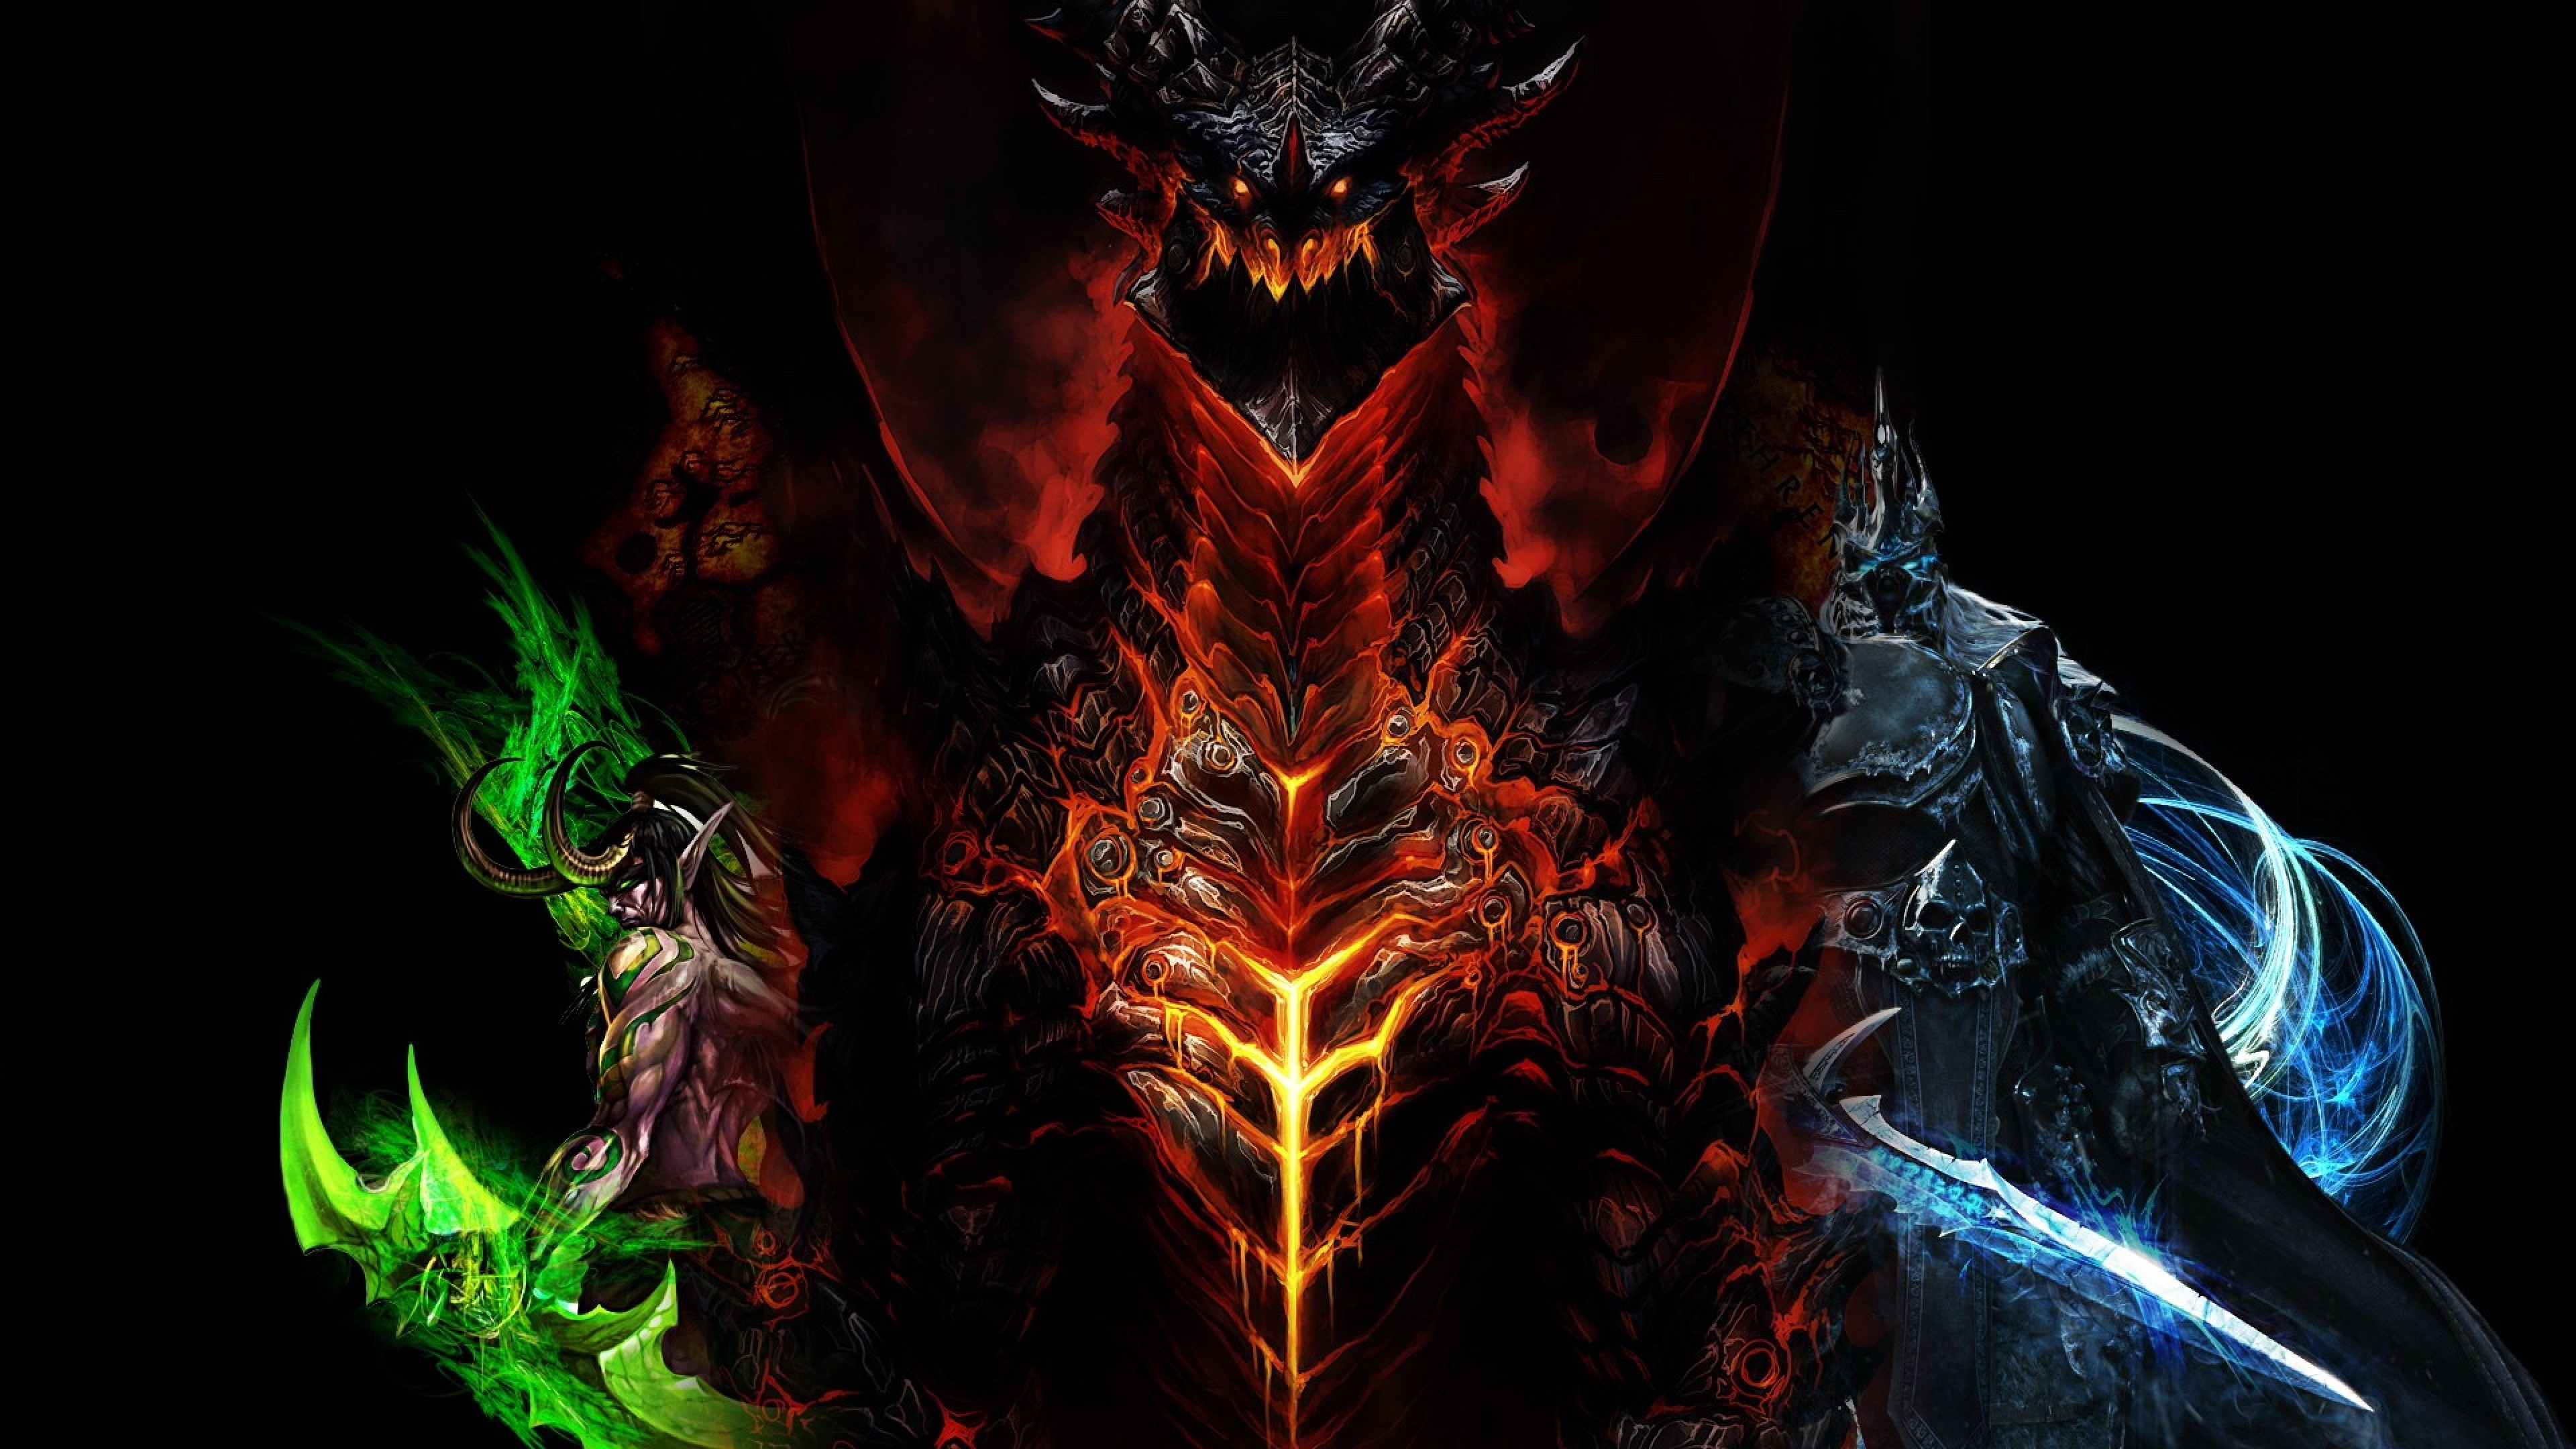 4k cool dragon wallpapers 46 images - Dragon backgrounds 1920x1080 ...